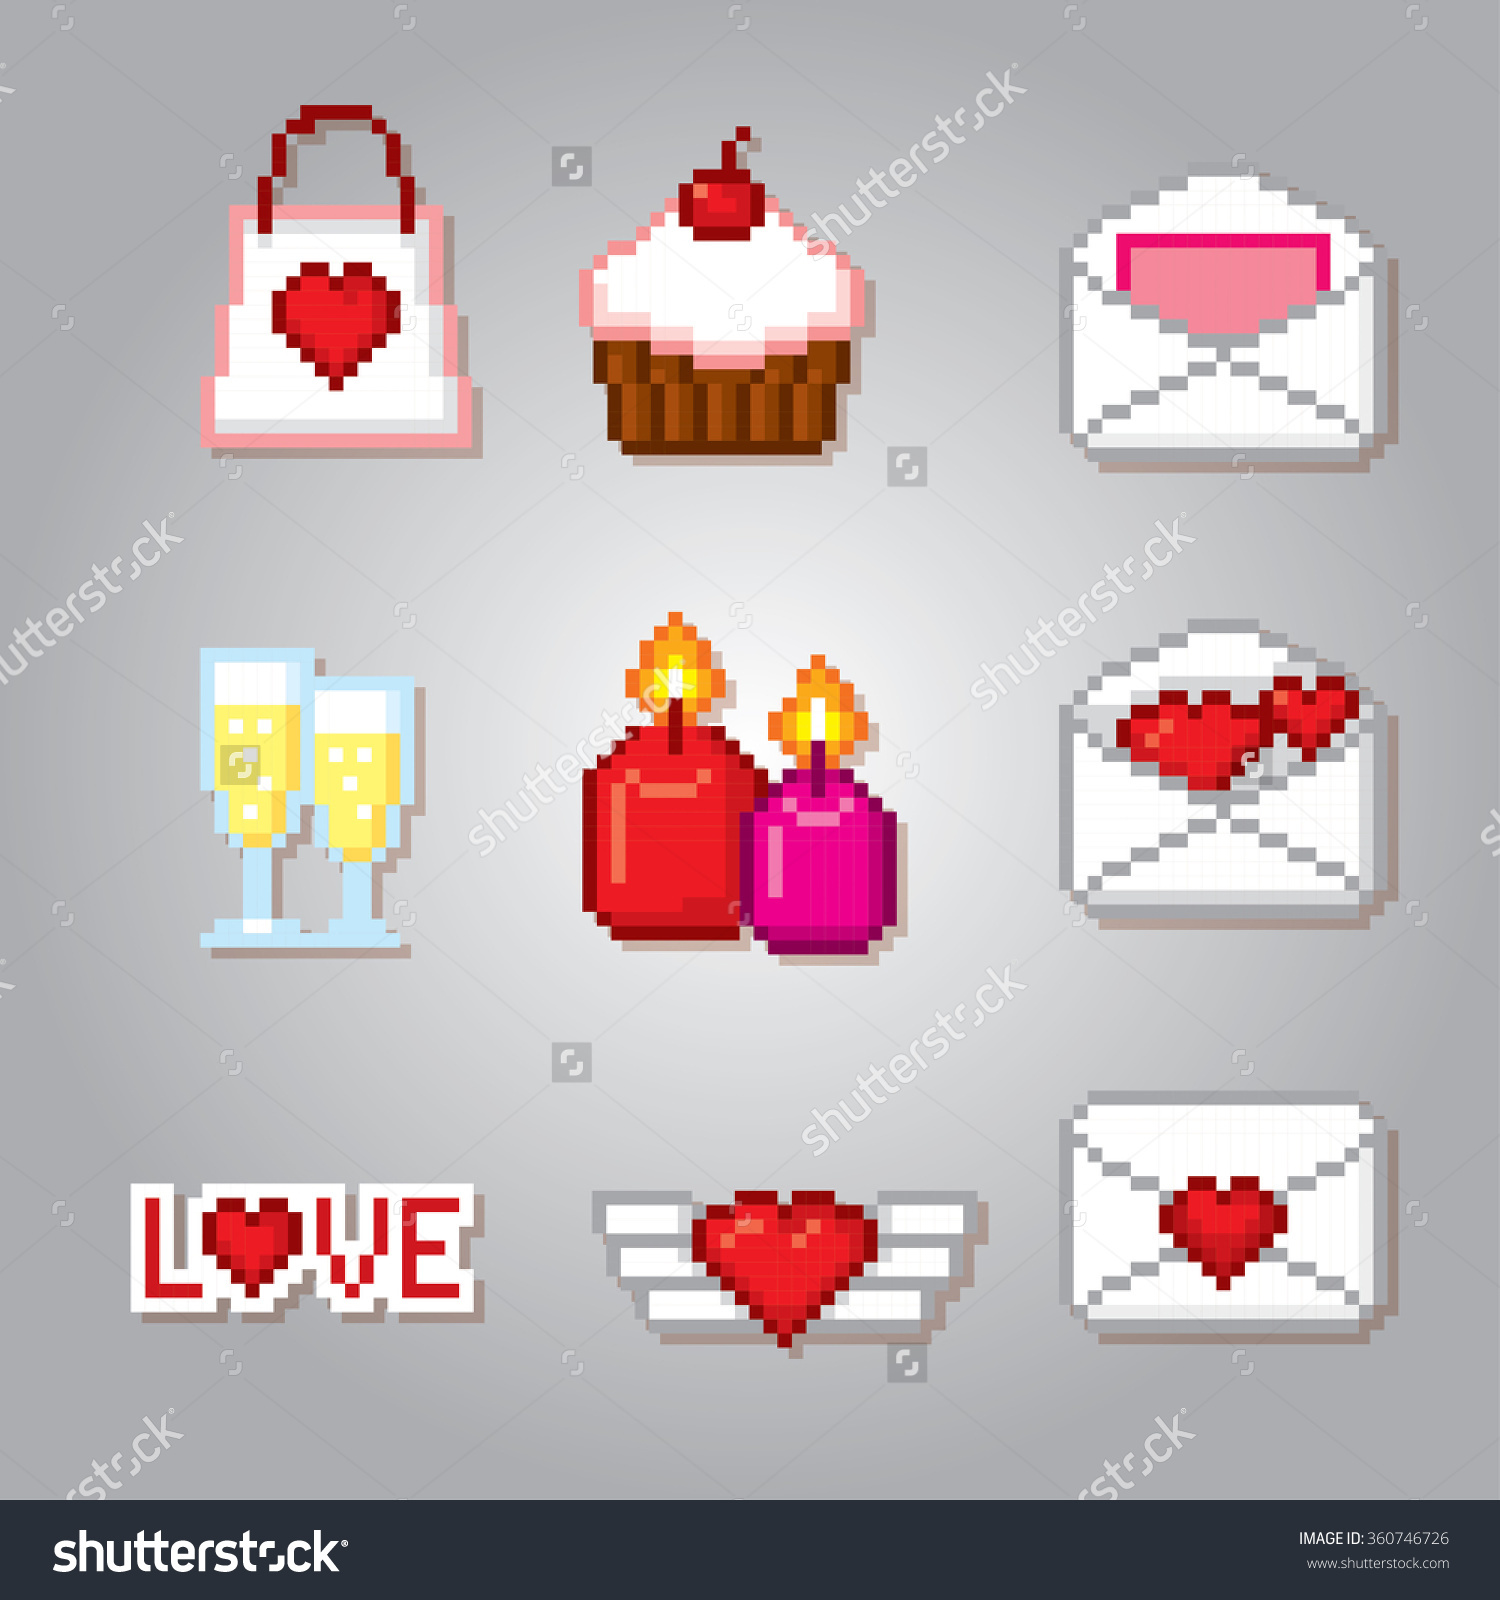 Valentine Day Icons Set. Pixel Art. Old School Computer Graphic.